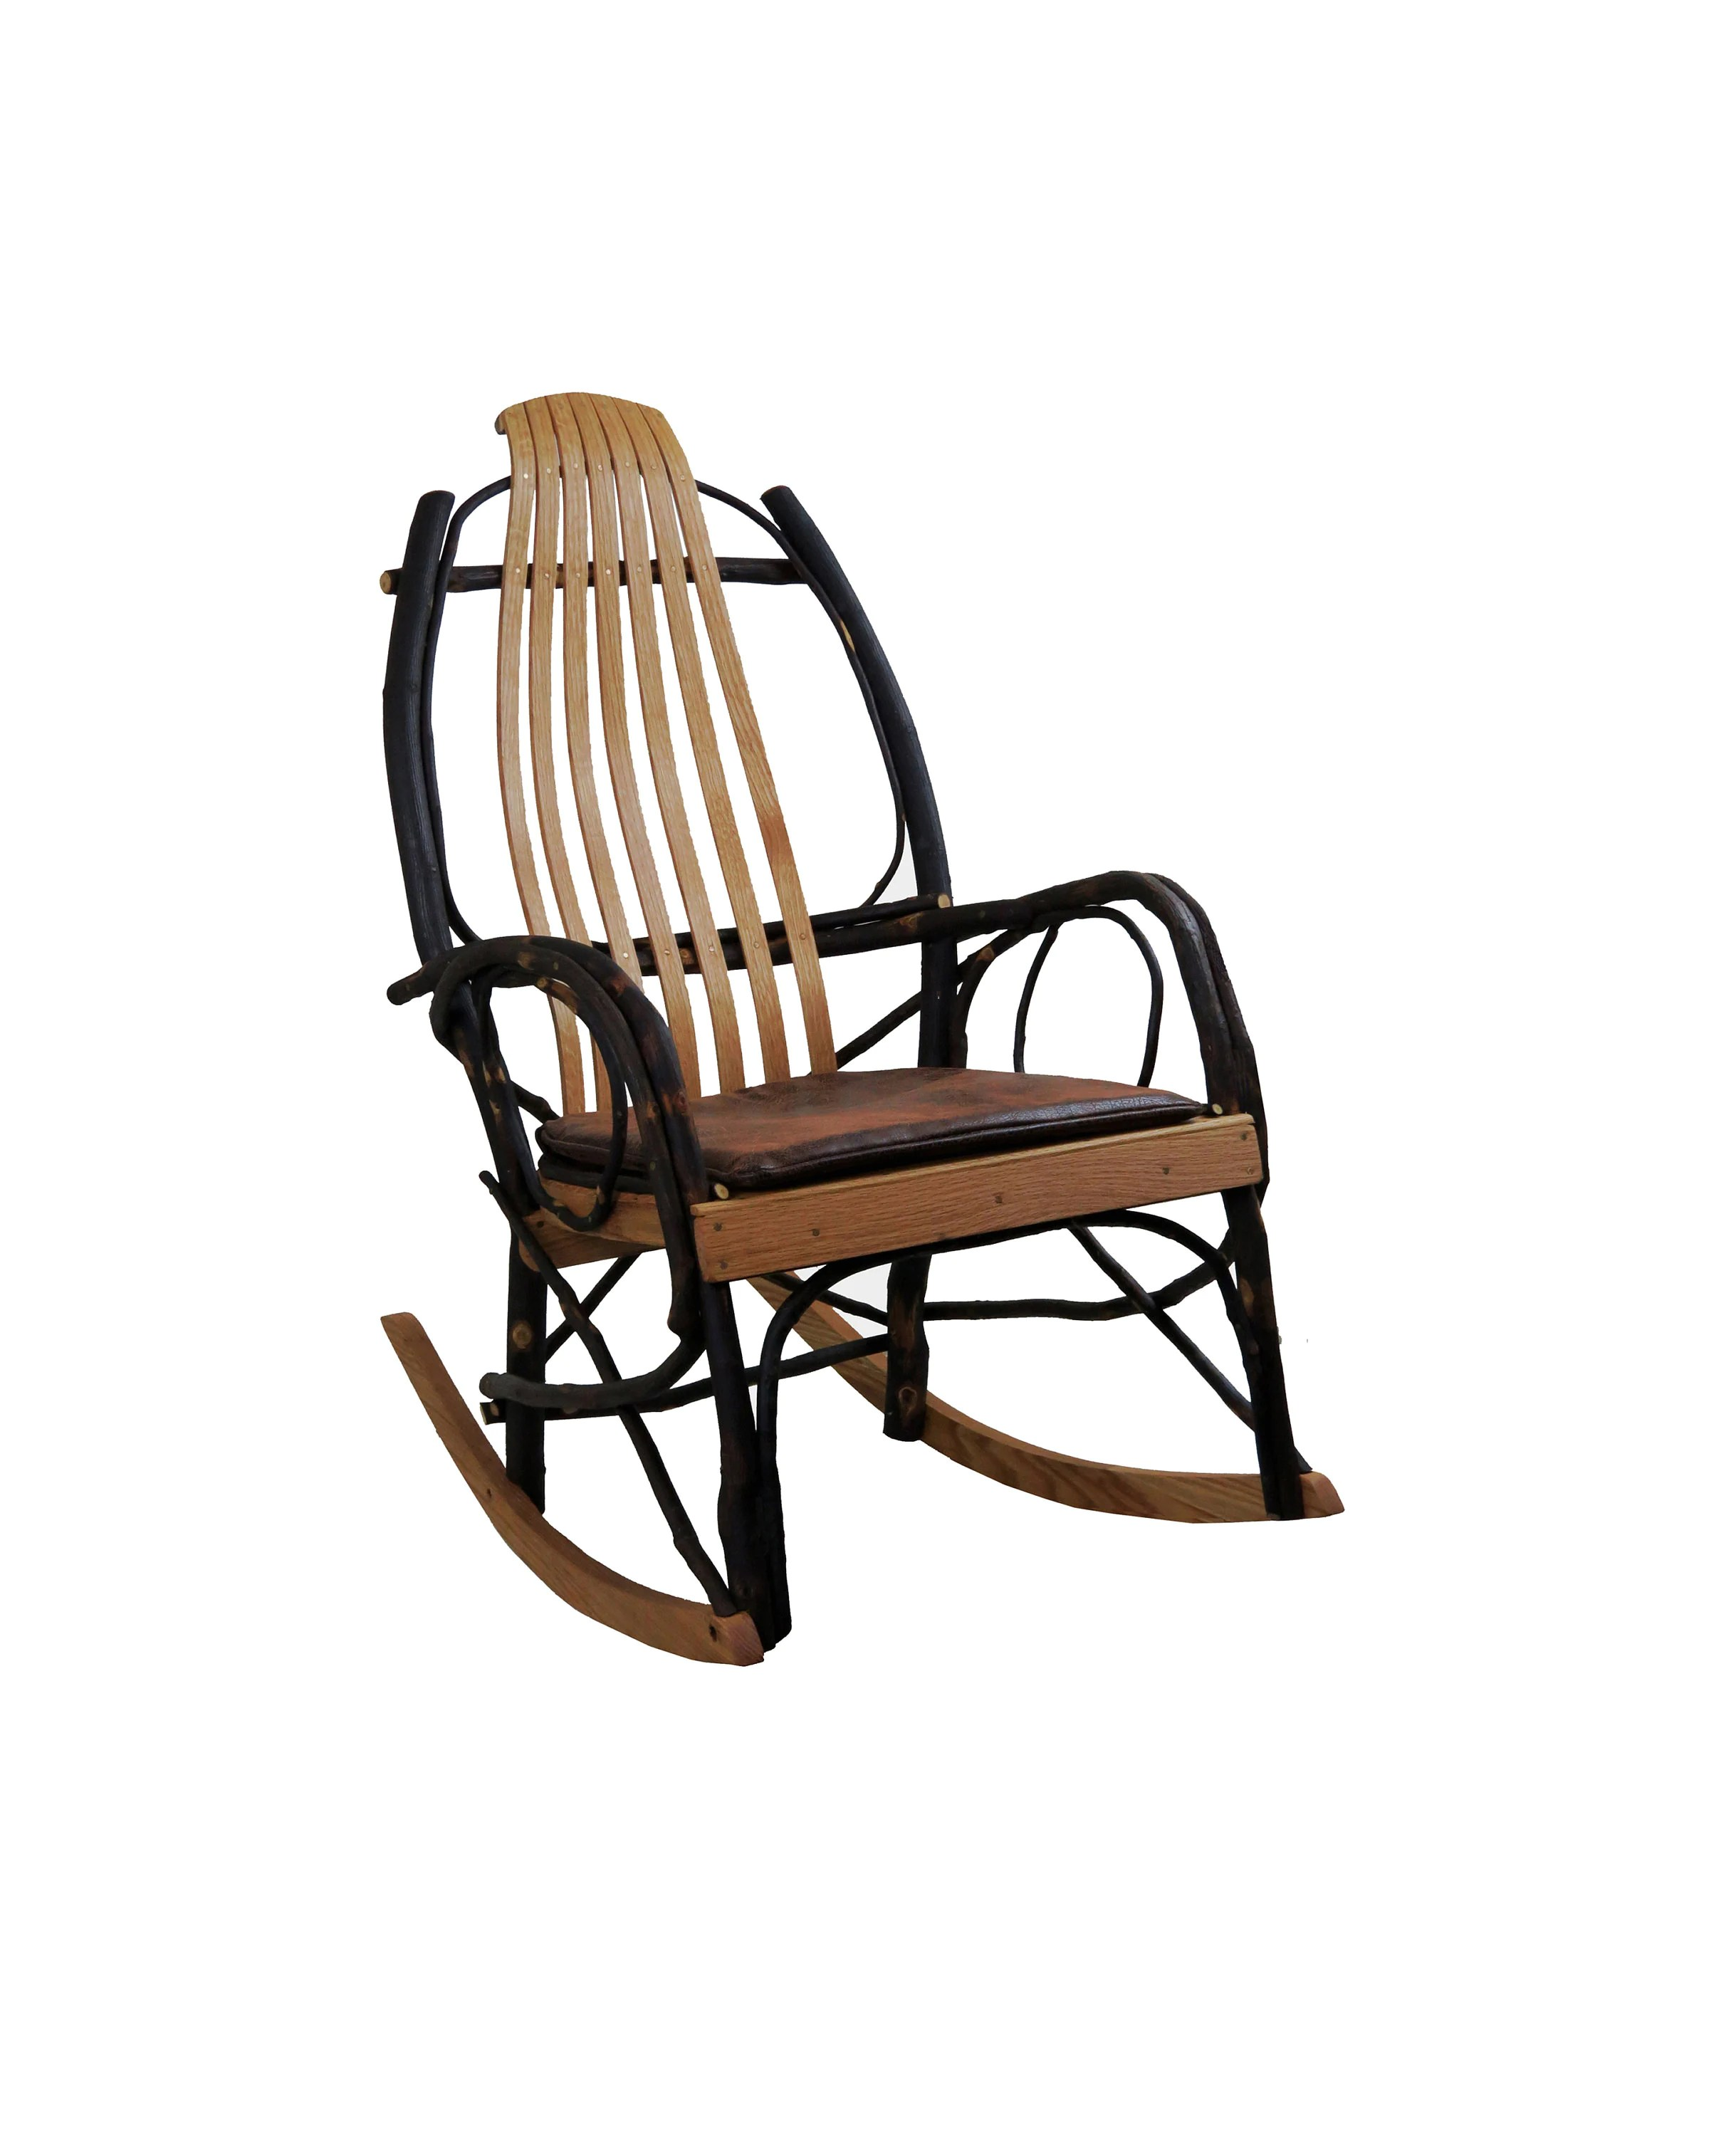 Amish Rocking Chair Seat Cushion For Amish Hickory Rocking Chair Distressed Faux Leather Fabric